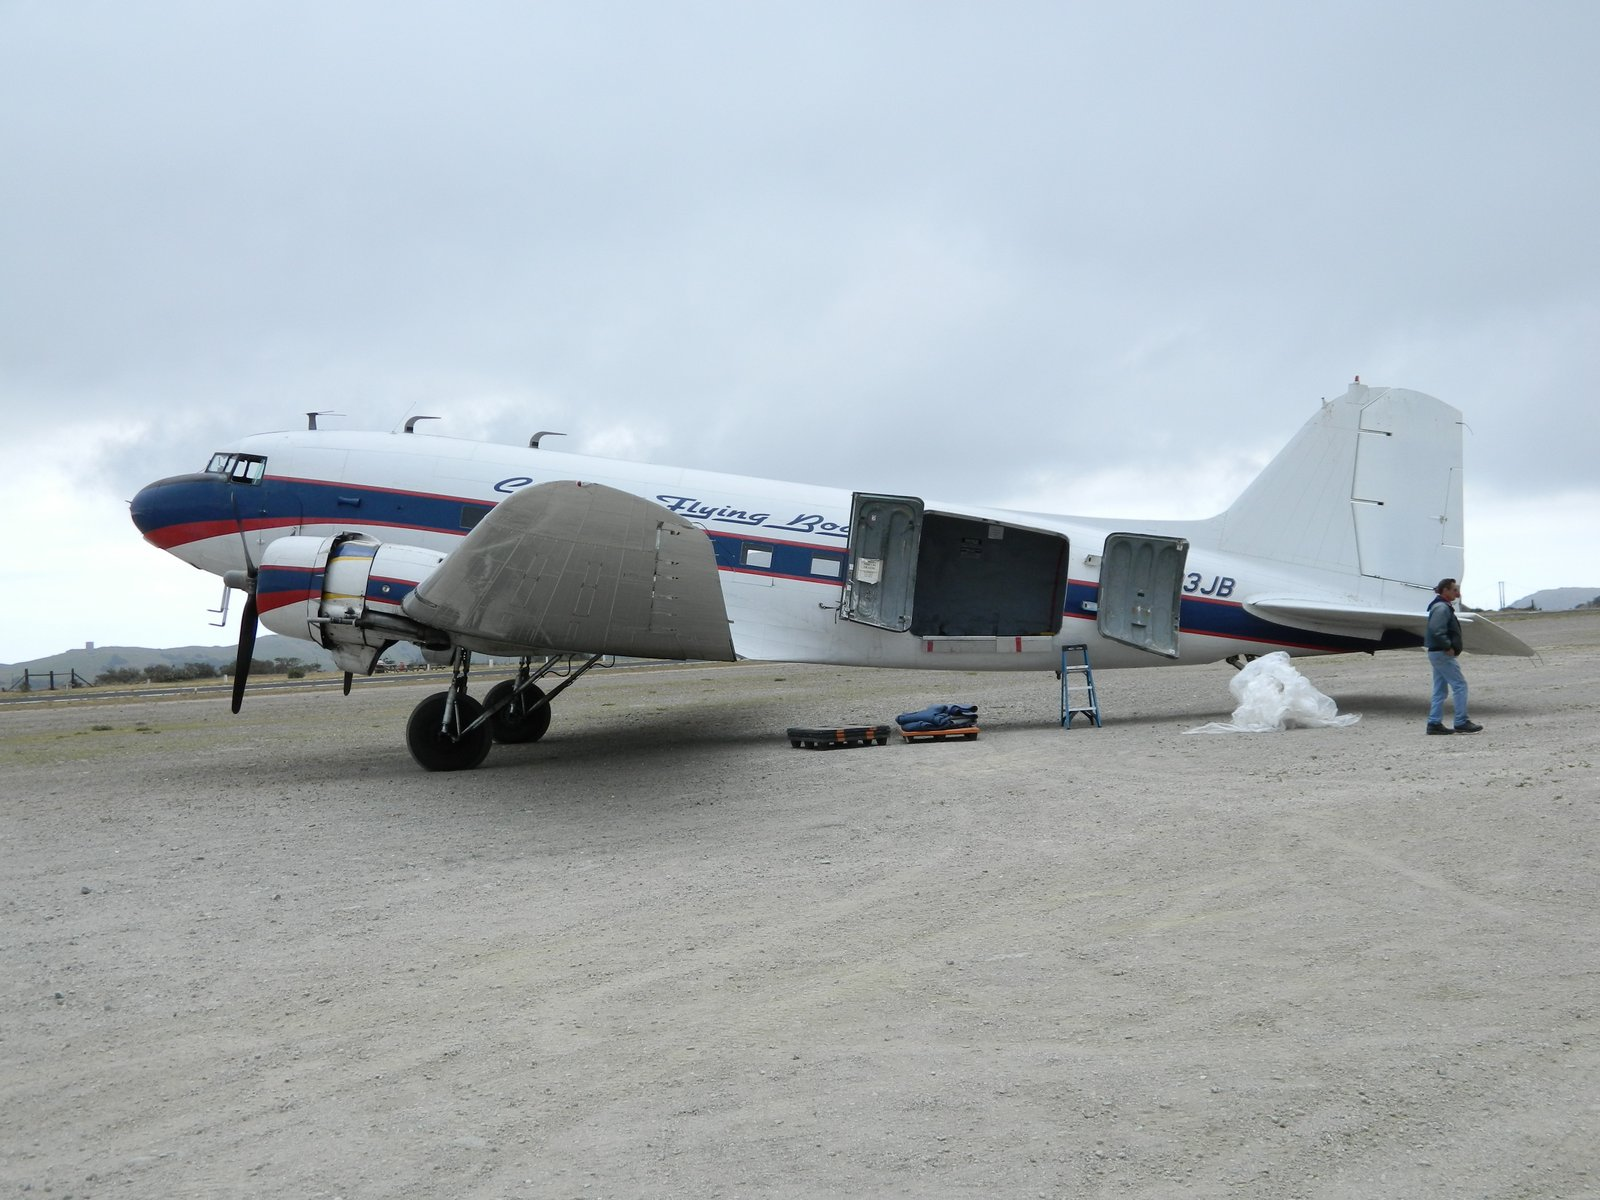 One of history's longest flying airliners, the DC-3 nears 80